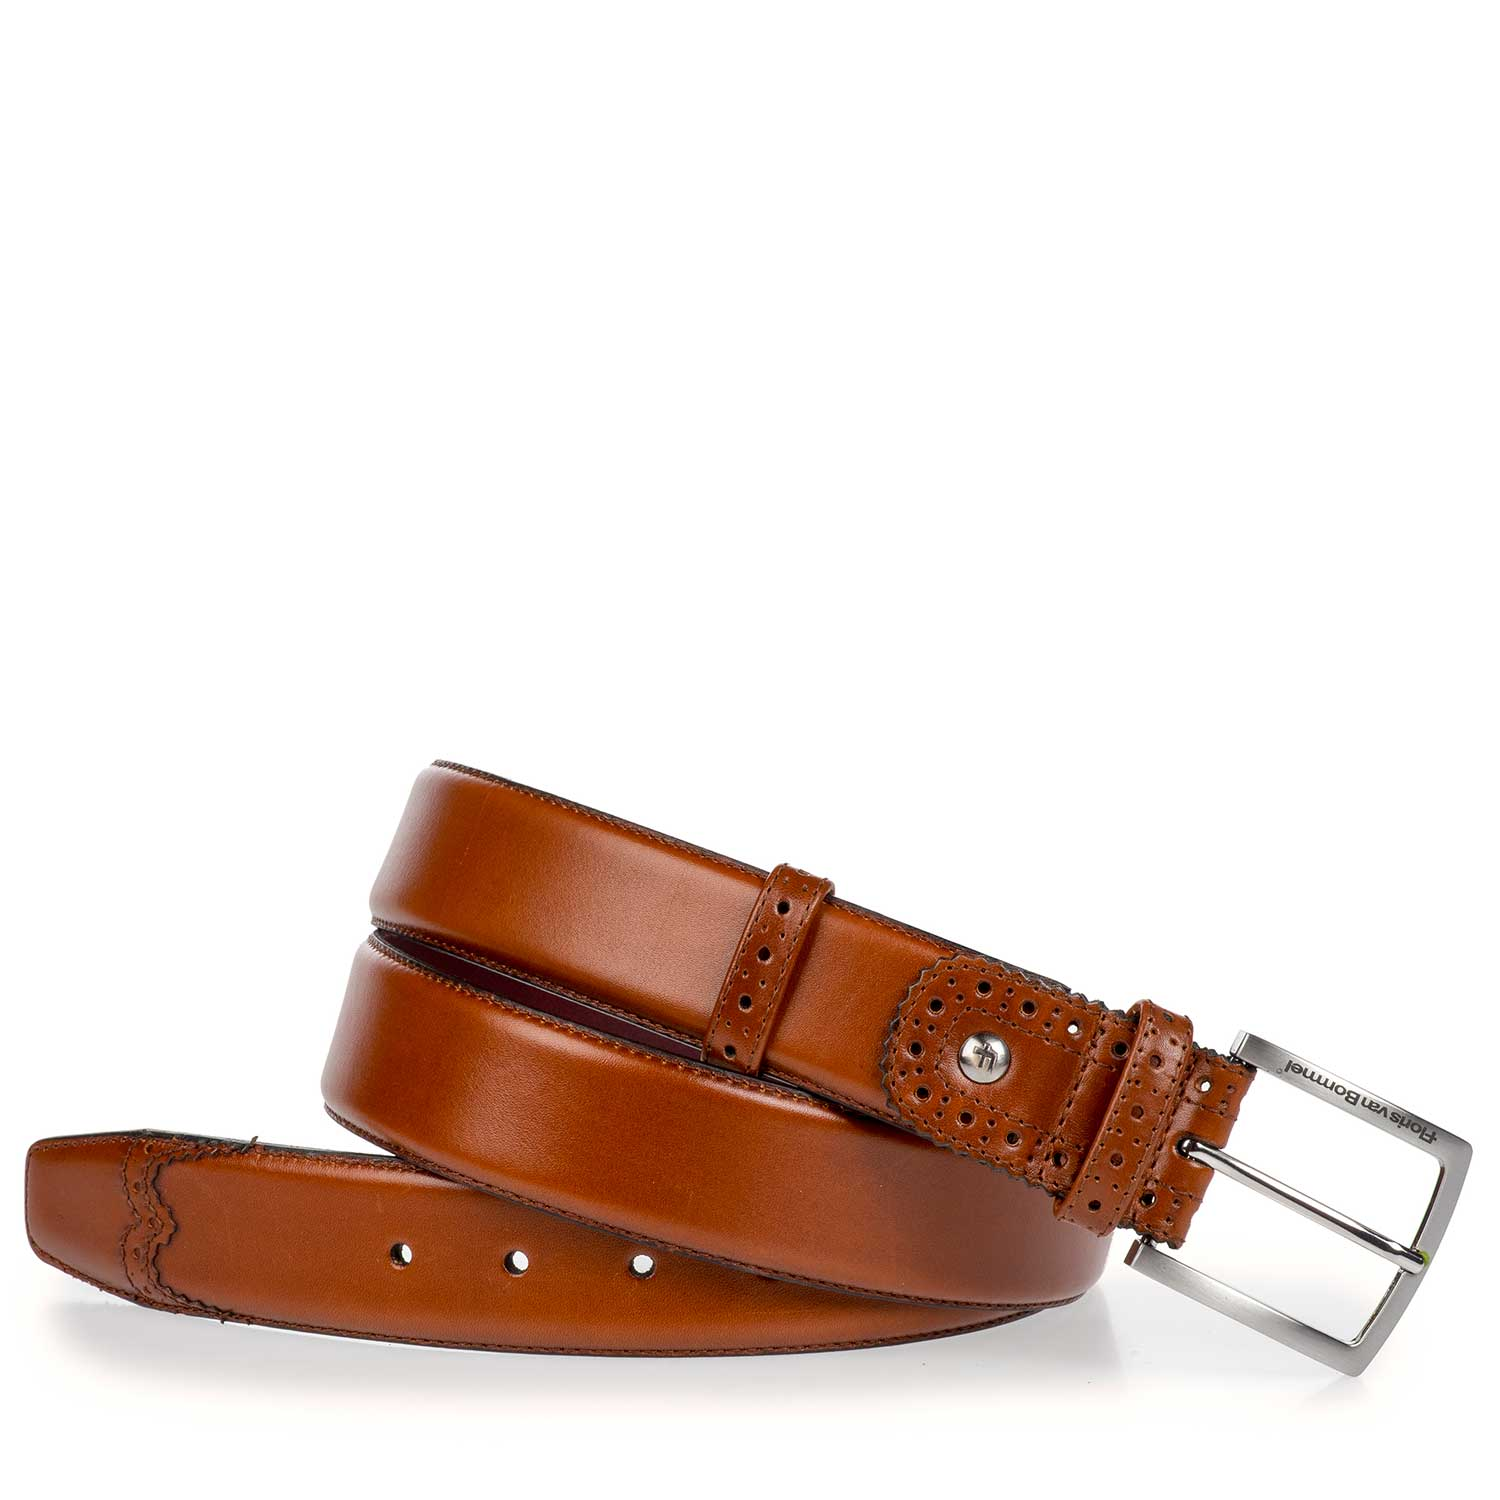 75171/11 - Dark cognac-coloured calf's leather belt